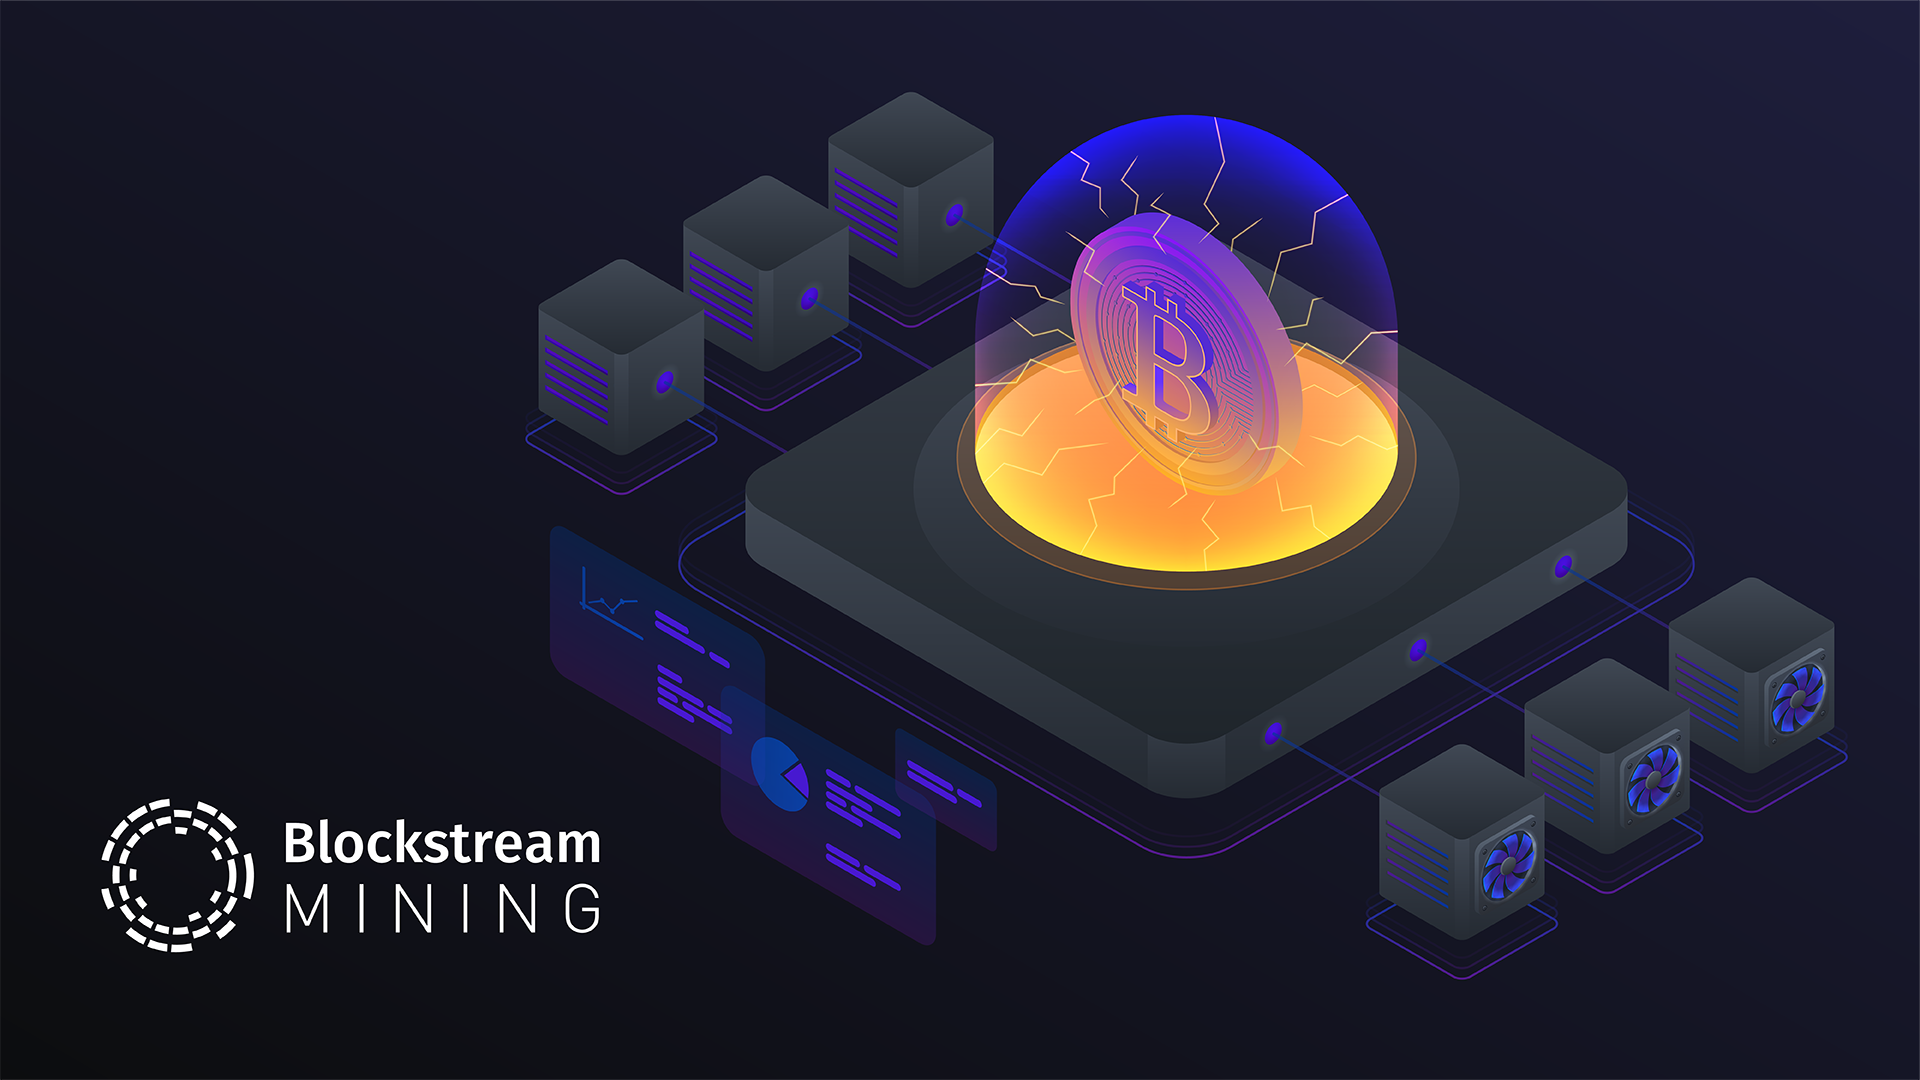 Blockstream - Announcing Blockstream Mining and Pool